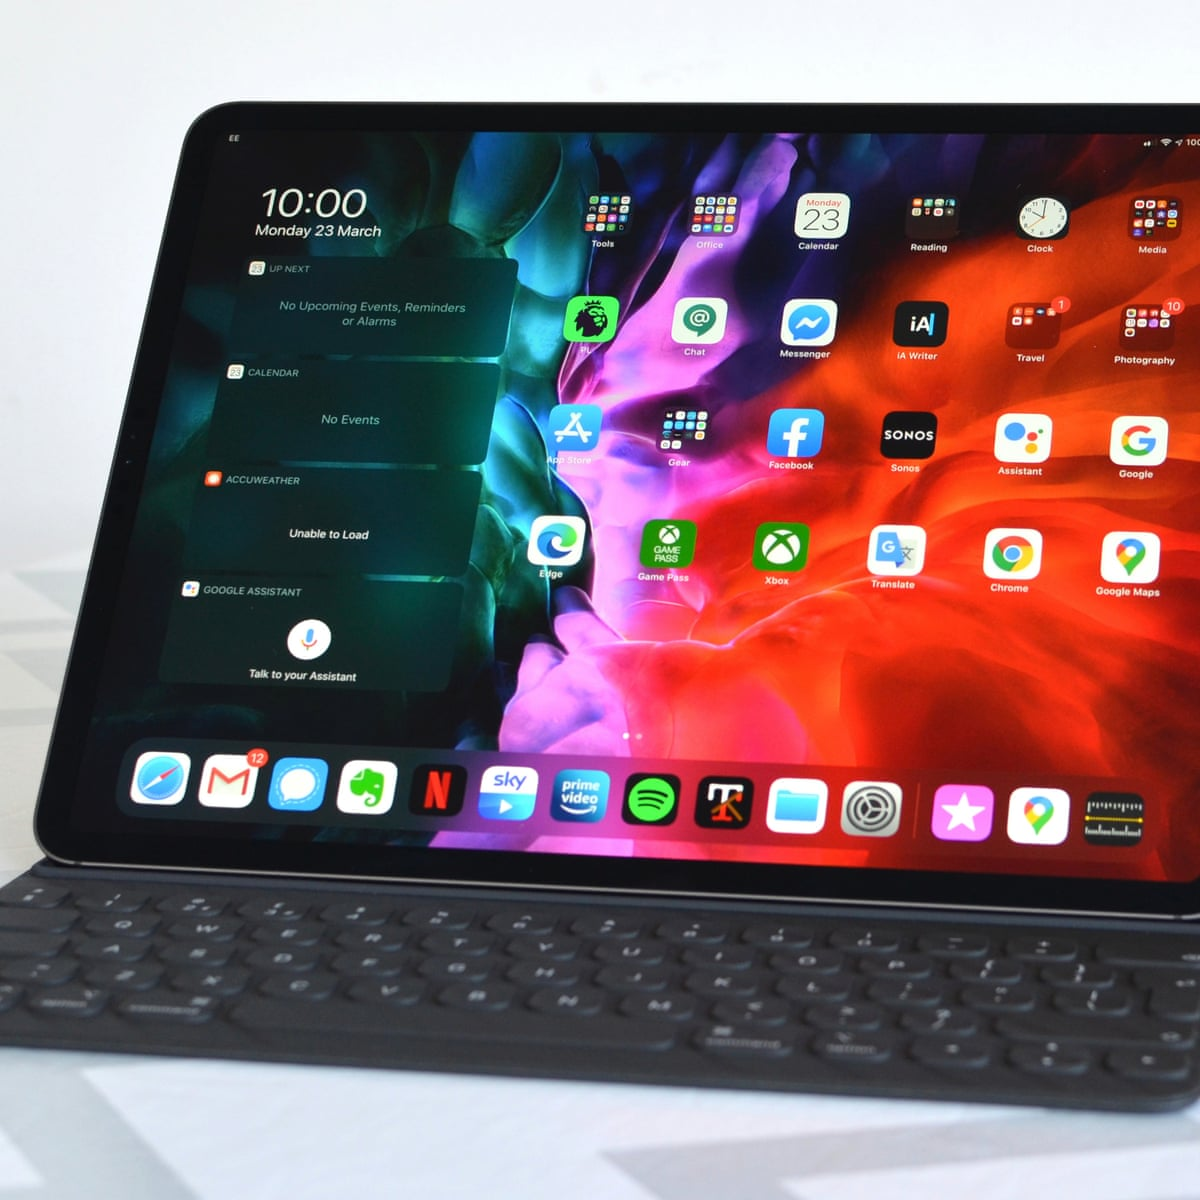 Apple 2020 Ipad Pro 12 9in Review The Best Mobile Tablet Can Now Get Real Work Done Ipad The Guardian